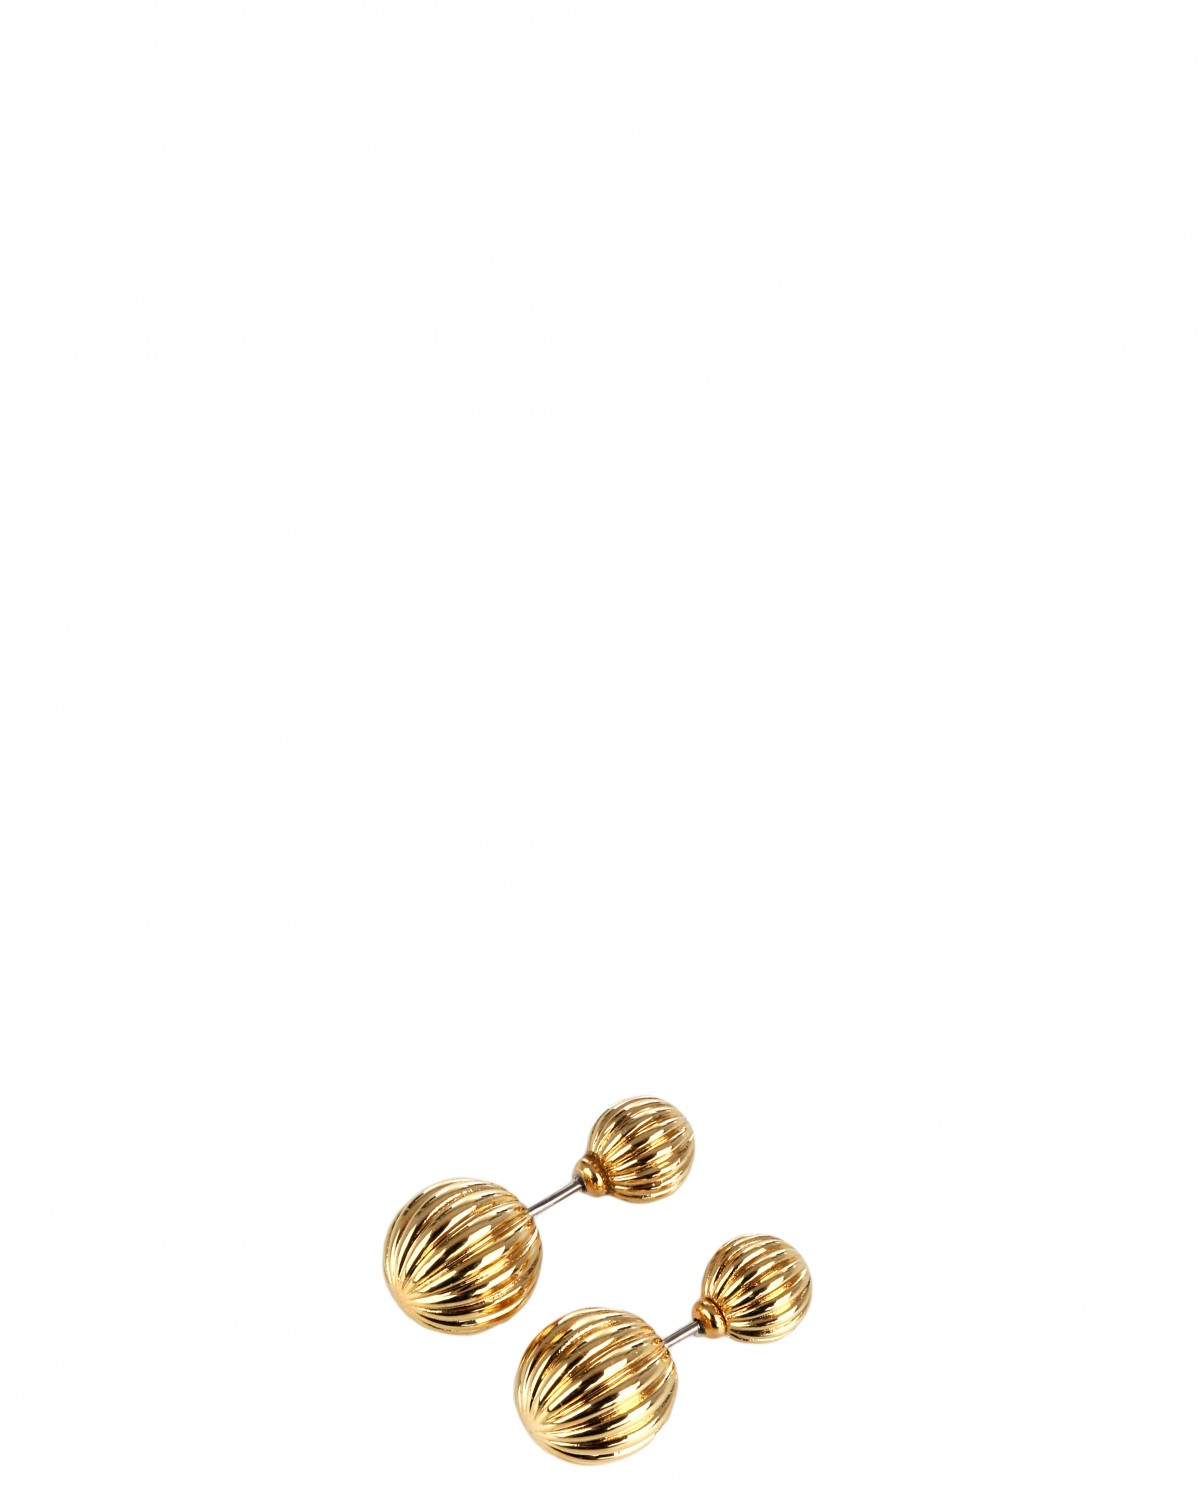 Lanvin Arpege earrings